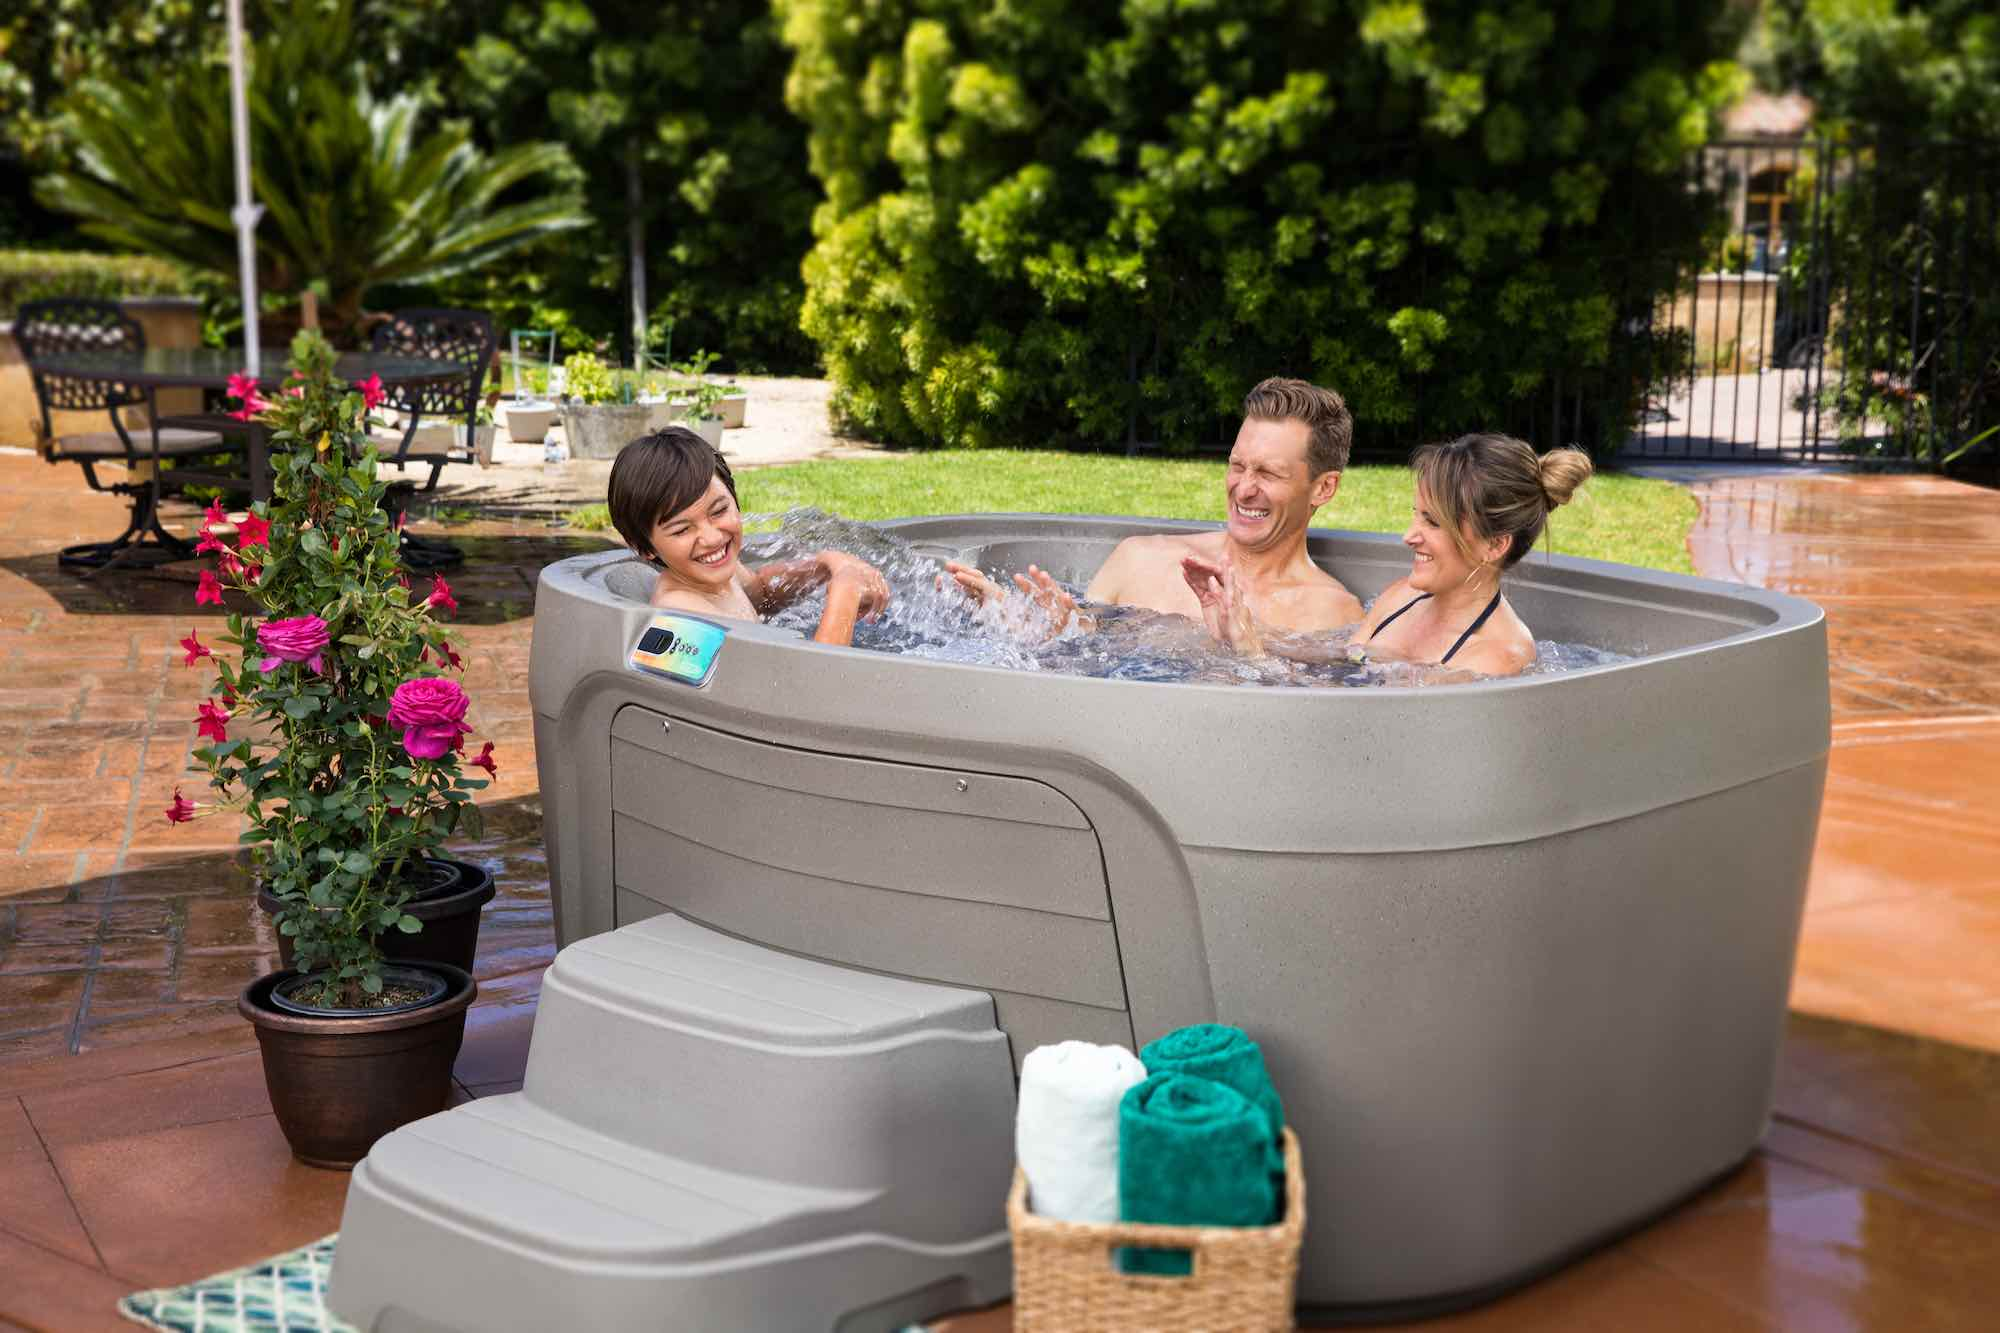 Fantasy Spas Drift Hot Tub at Lifestyle Outdoor in Los Angeles, California